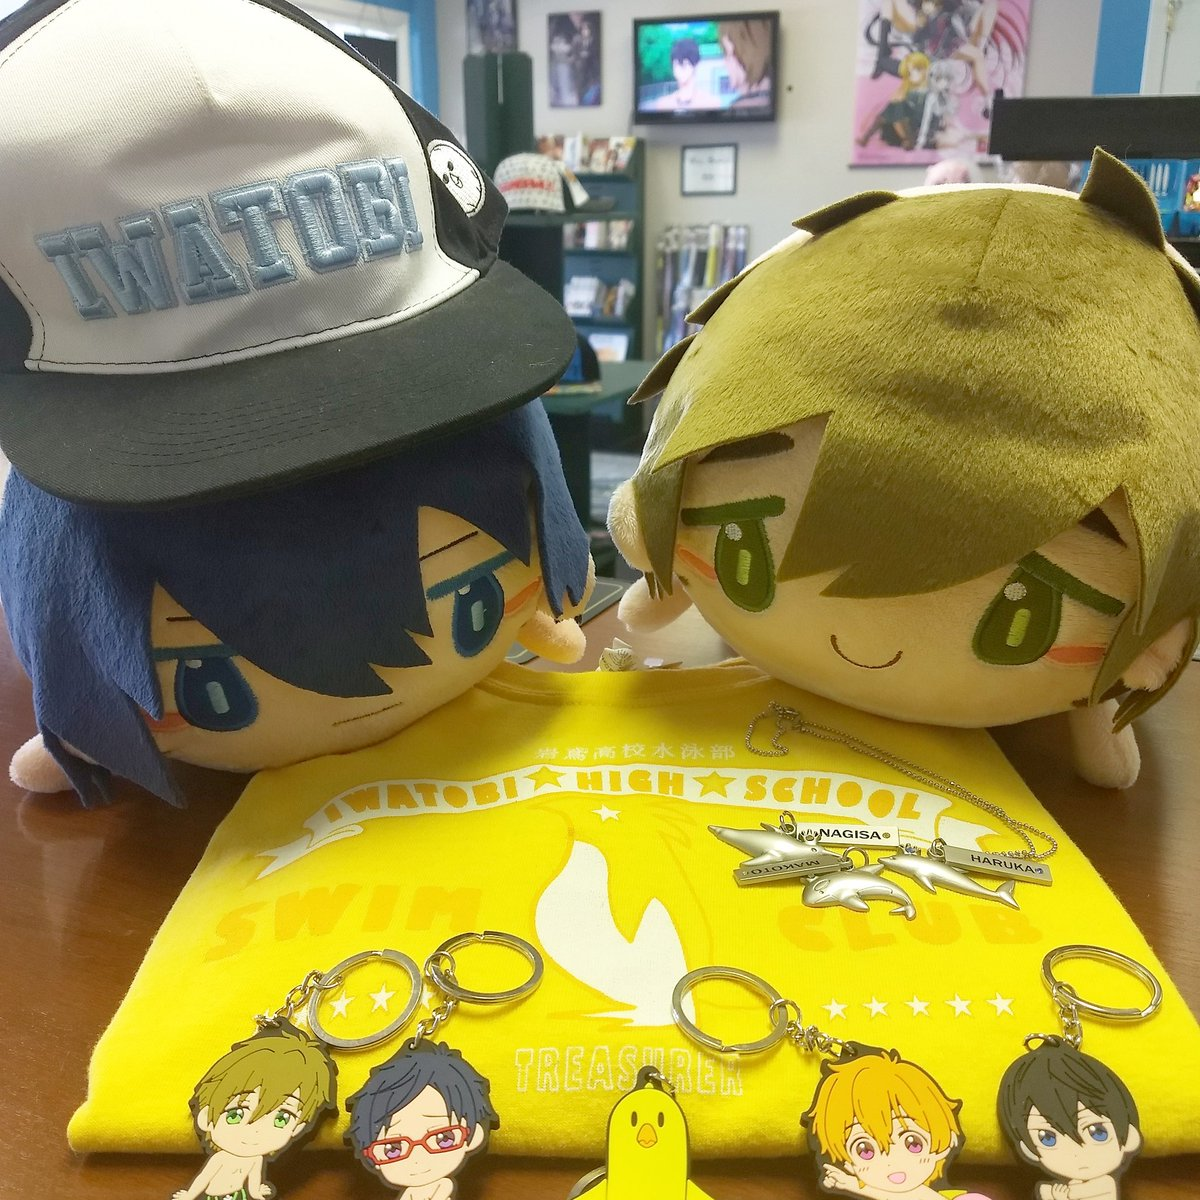 Take Your Marks Movie Is In Theaters Tonight Only Come Today And Grab Some Of Our Free Items Before You Go See It Animeparadaisu Anime Freeanime